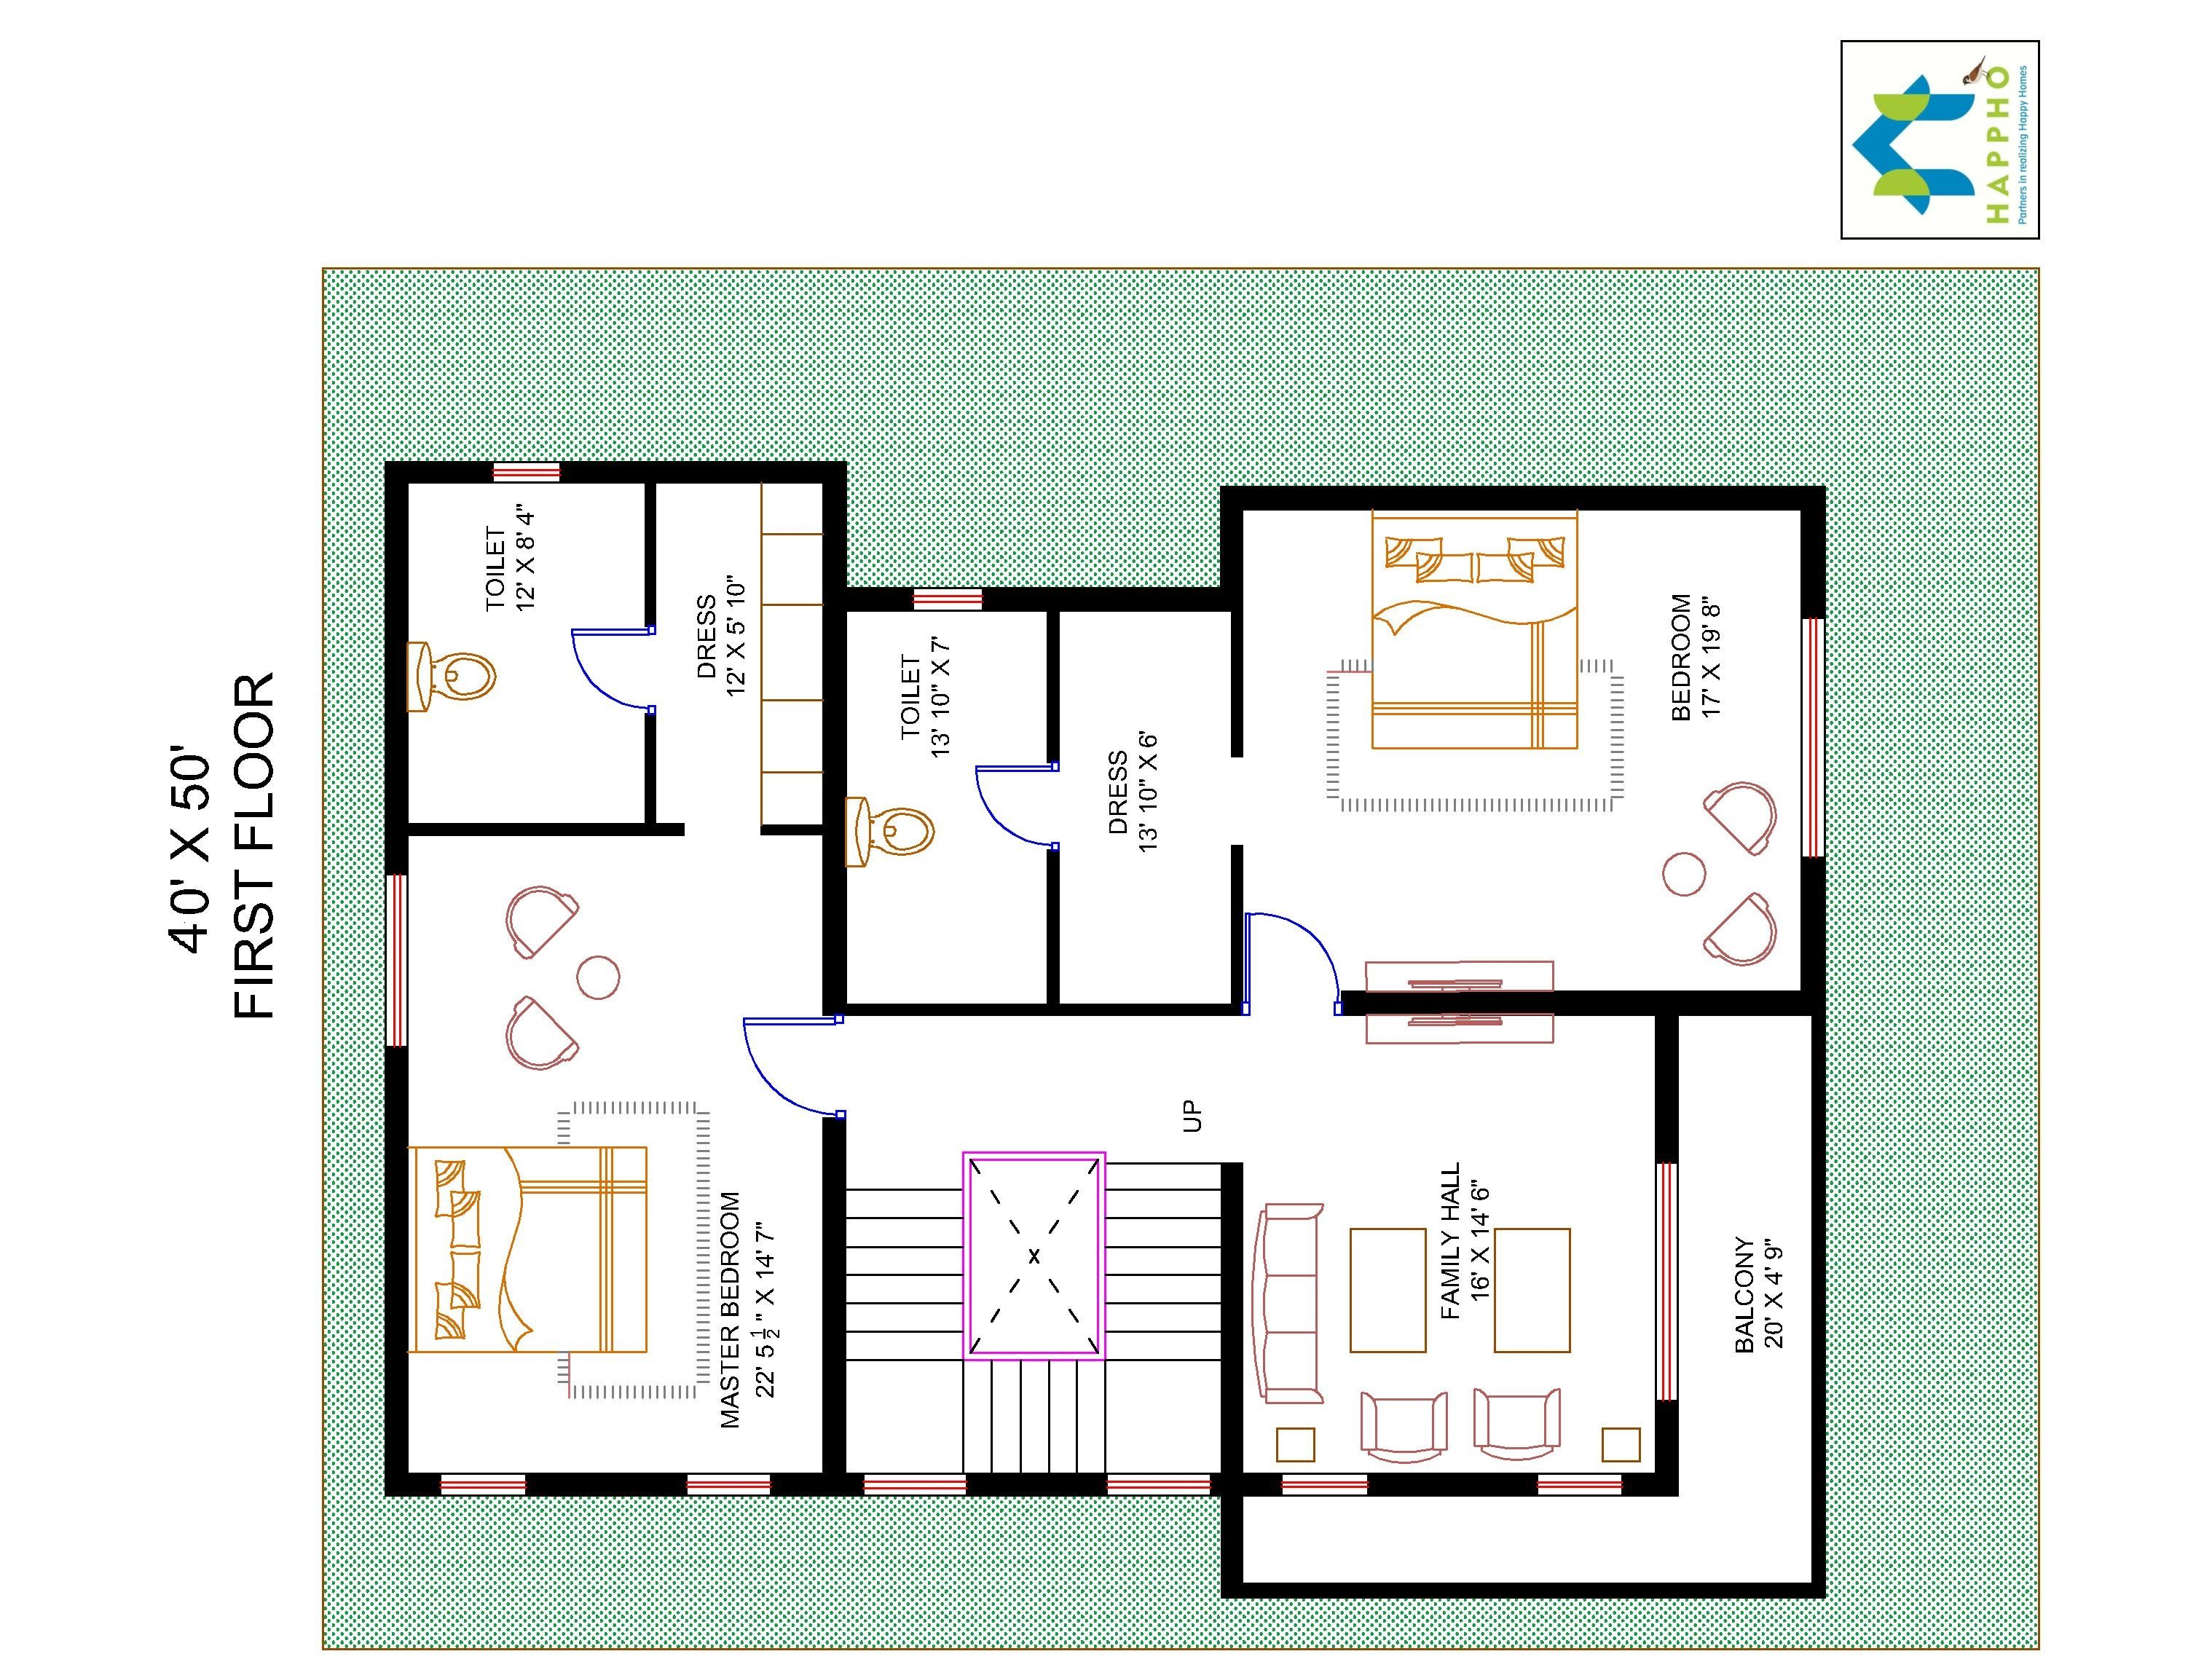 3 bhk floor plan for 40 x 50 plot 2000 square feet 222 for Square footage of a room for flooring